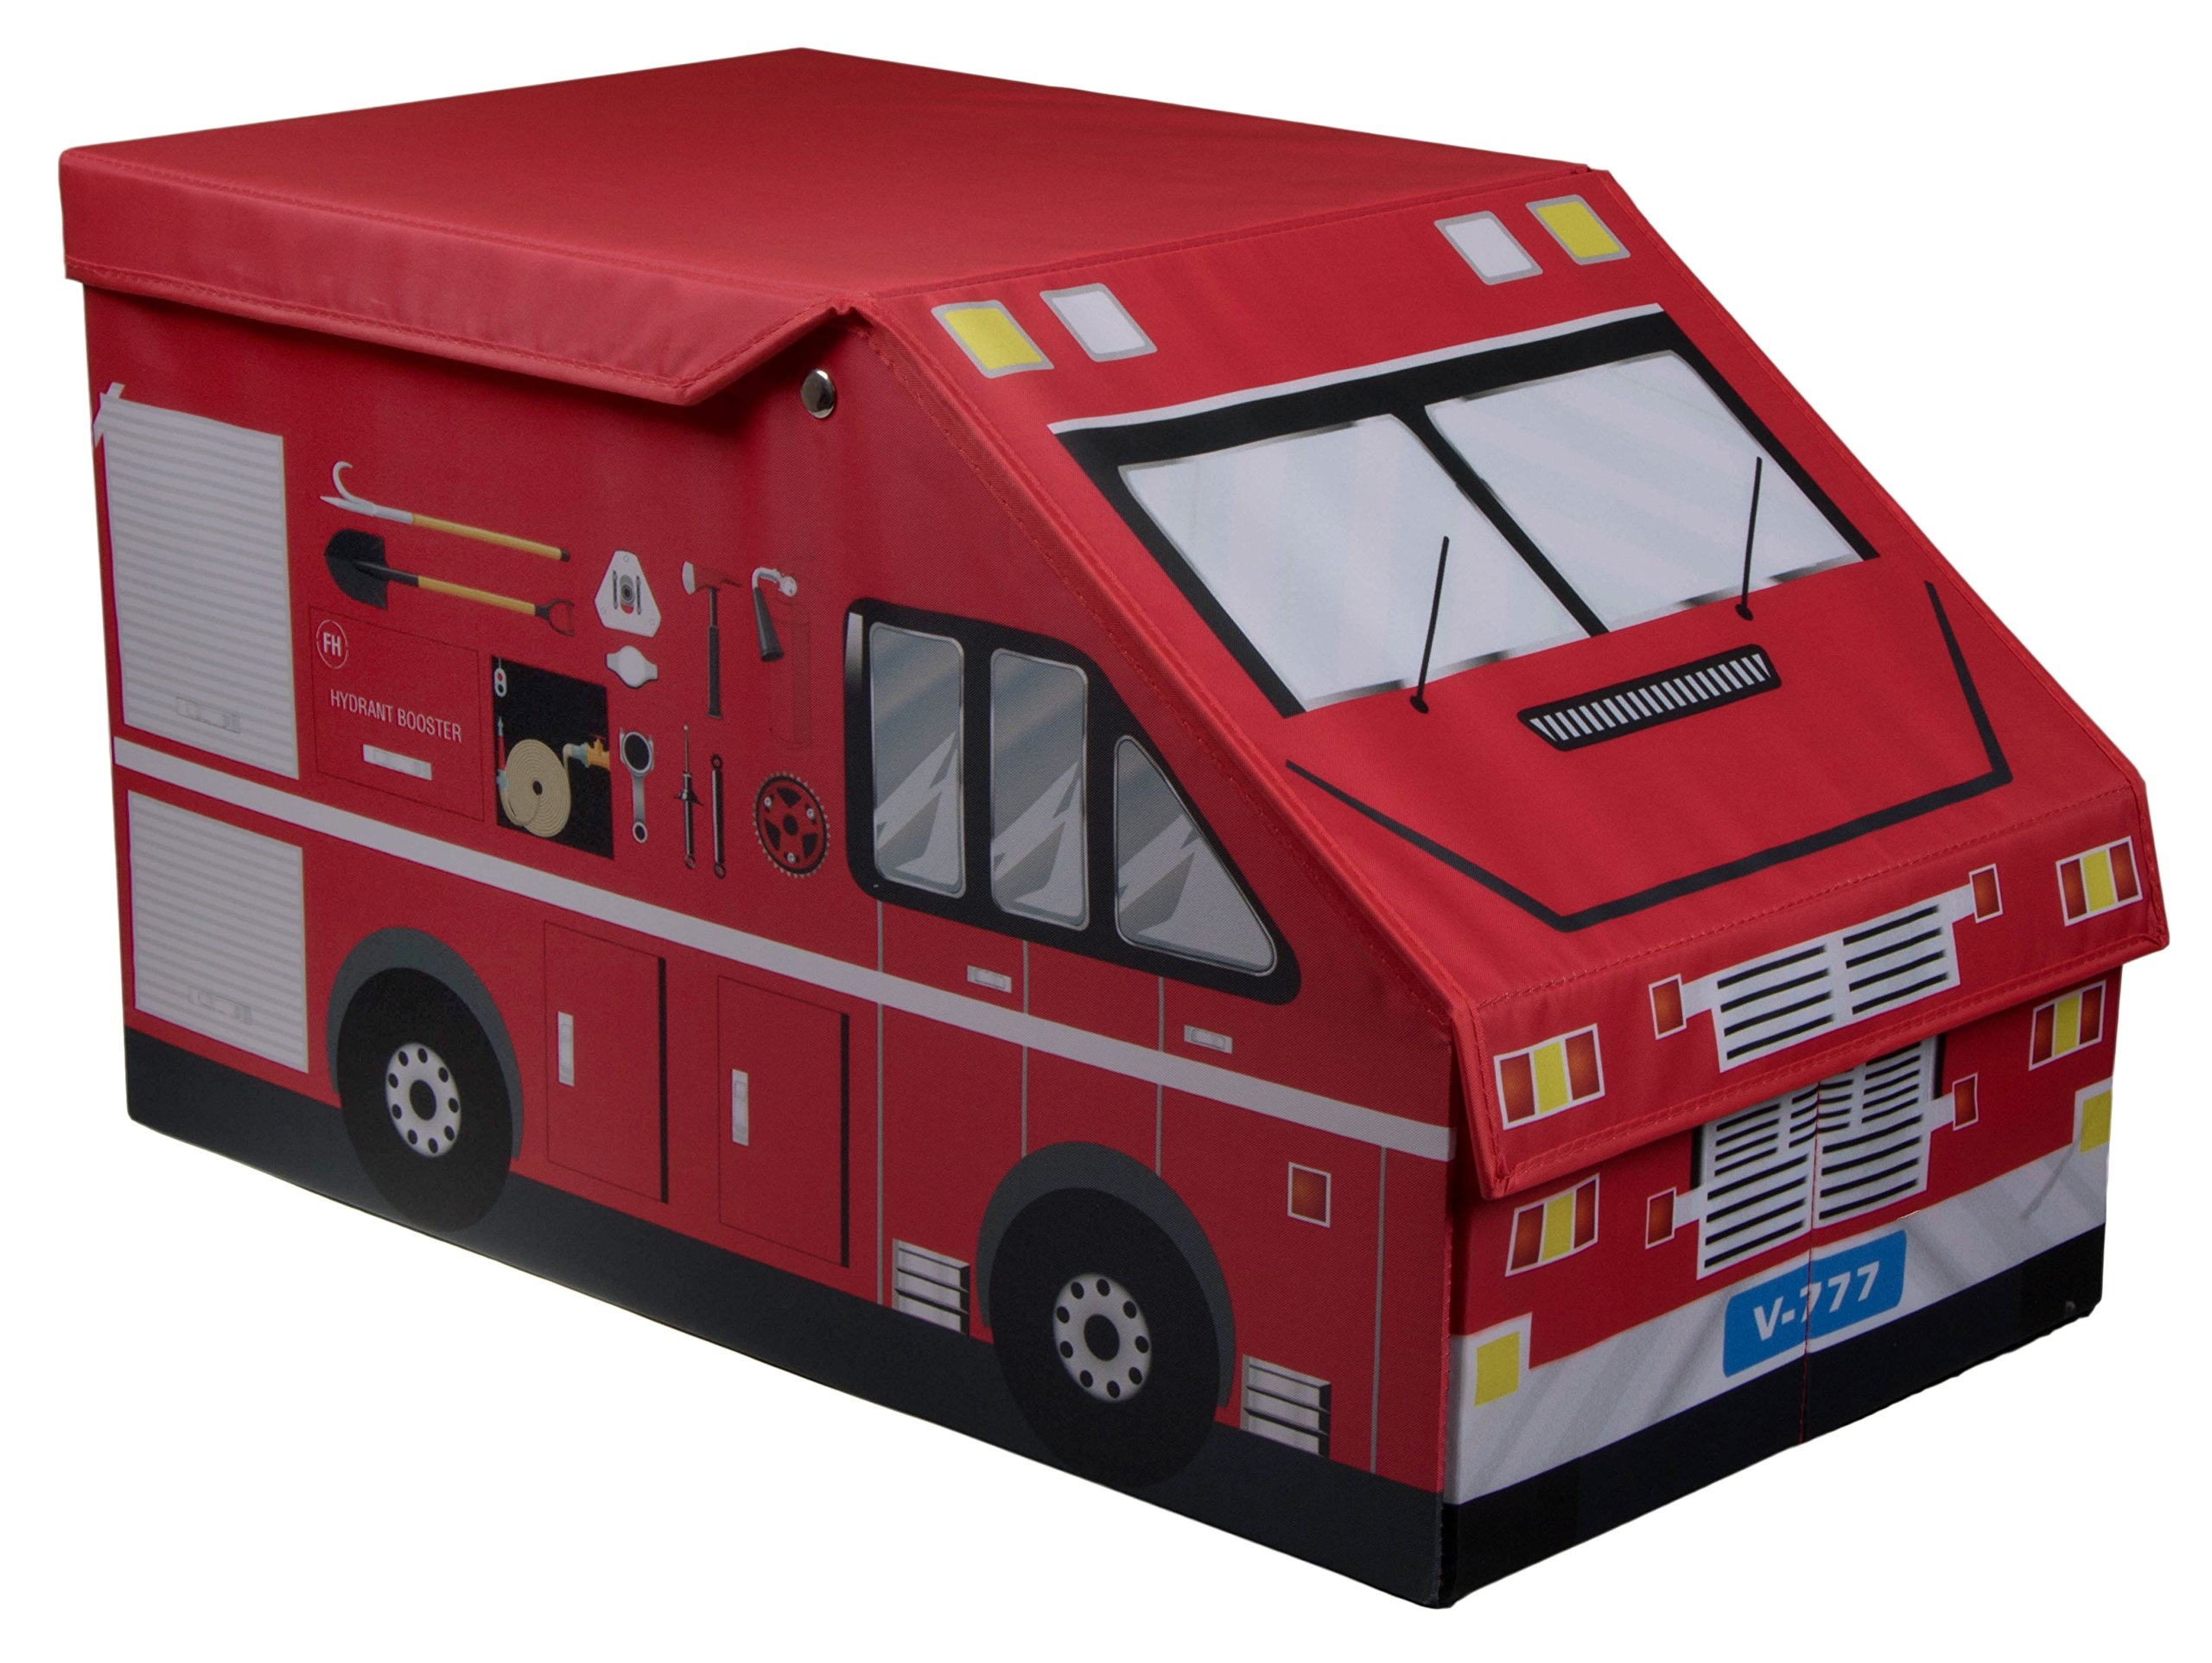 Kids Collapsible Ottoman Toy Books Box Storage Seat Chest: Firetruck For Kids: Amazon.com